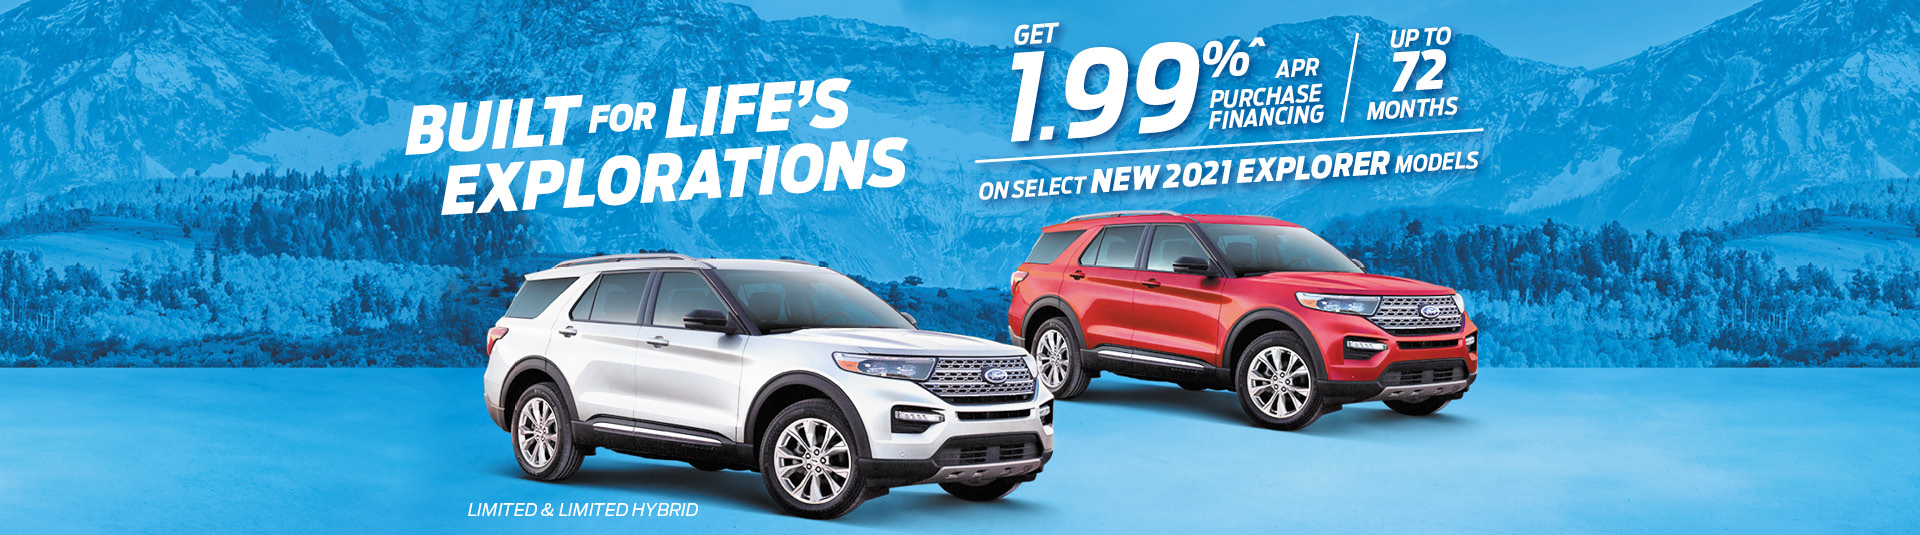 1.99% APR up to 72 Months on Select 2021 Explorer Models